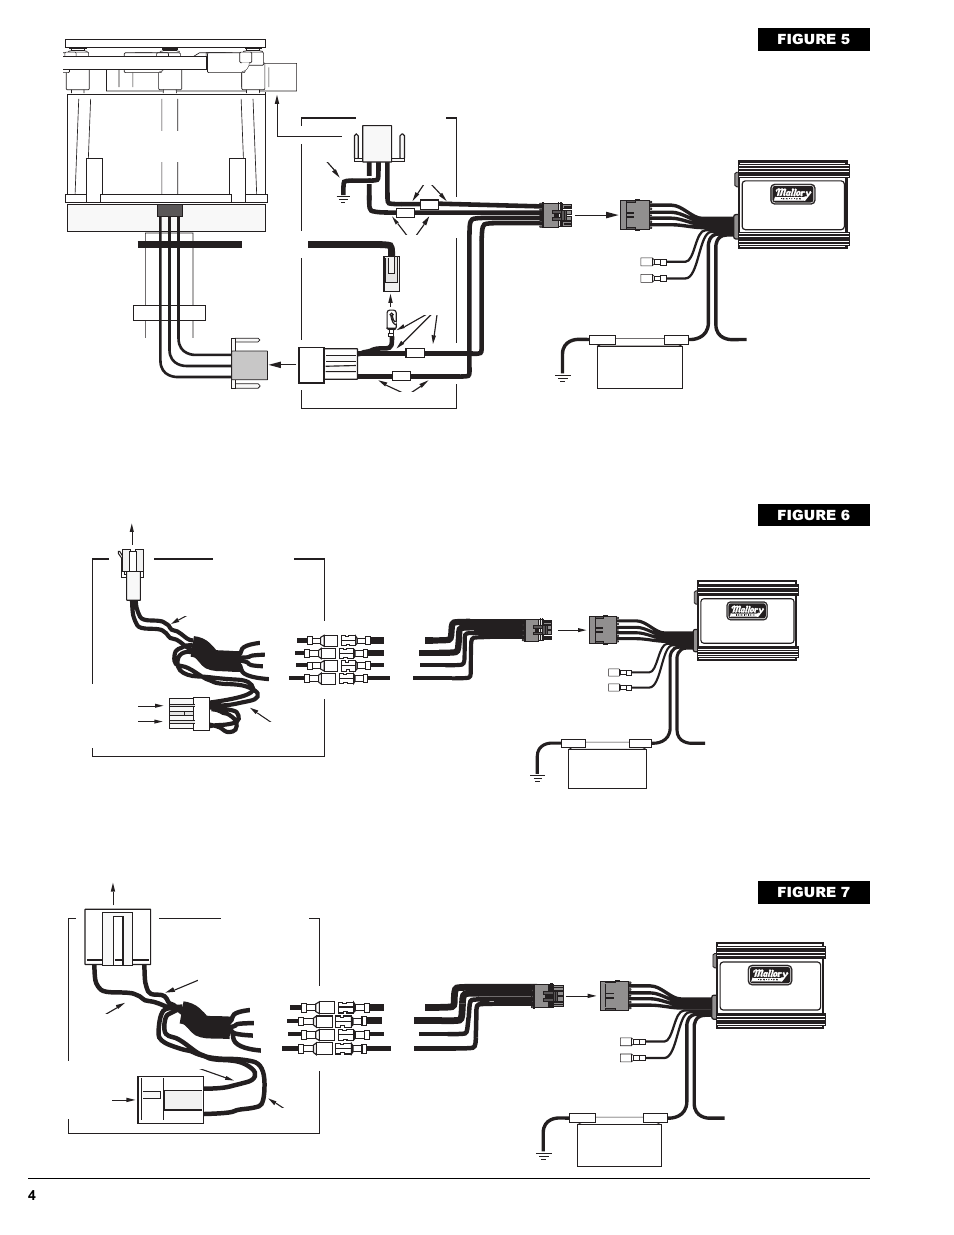 Mallory Hyfire Ignition Box Wiring Diagram. Jacobs Ignition Wiring on mallory unilite distributor, wiring diagram for chevy distributor, wiring diagram for accel distributor, wiring diagram for prestolite distributor,